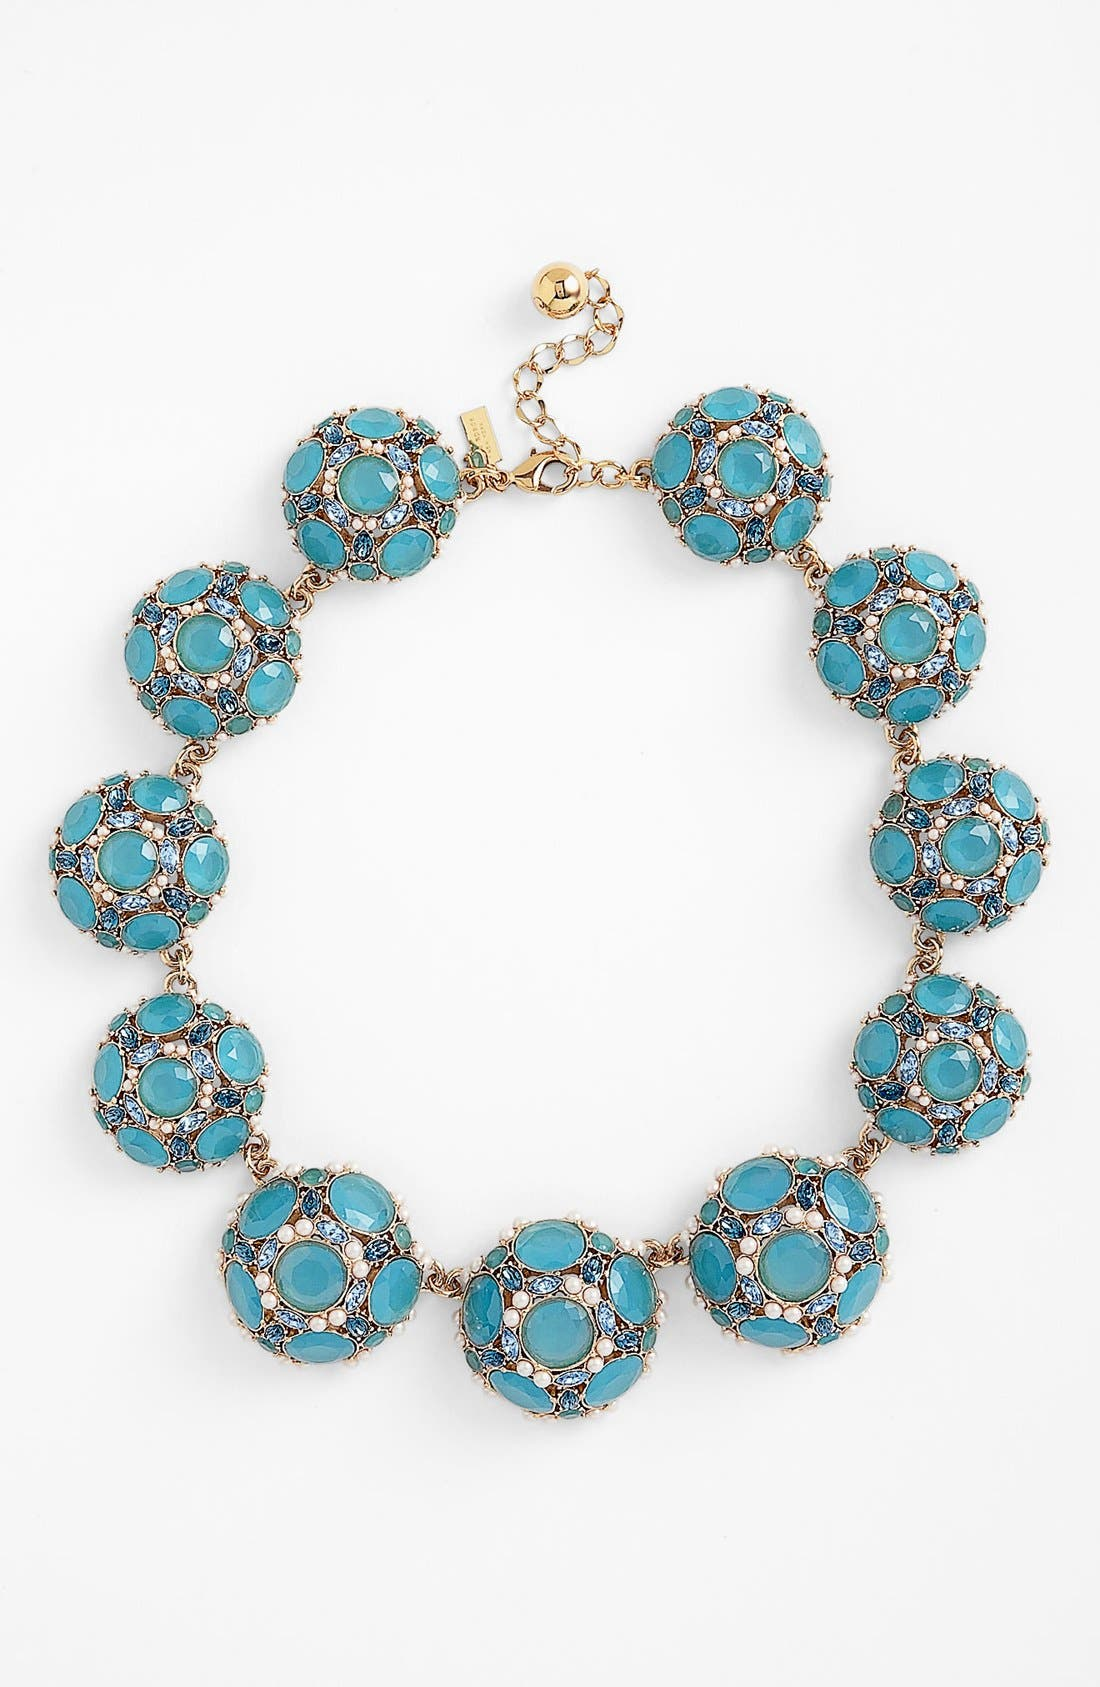 Main Image - kate spade new york 'belle fleur' collar necklace